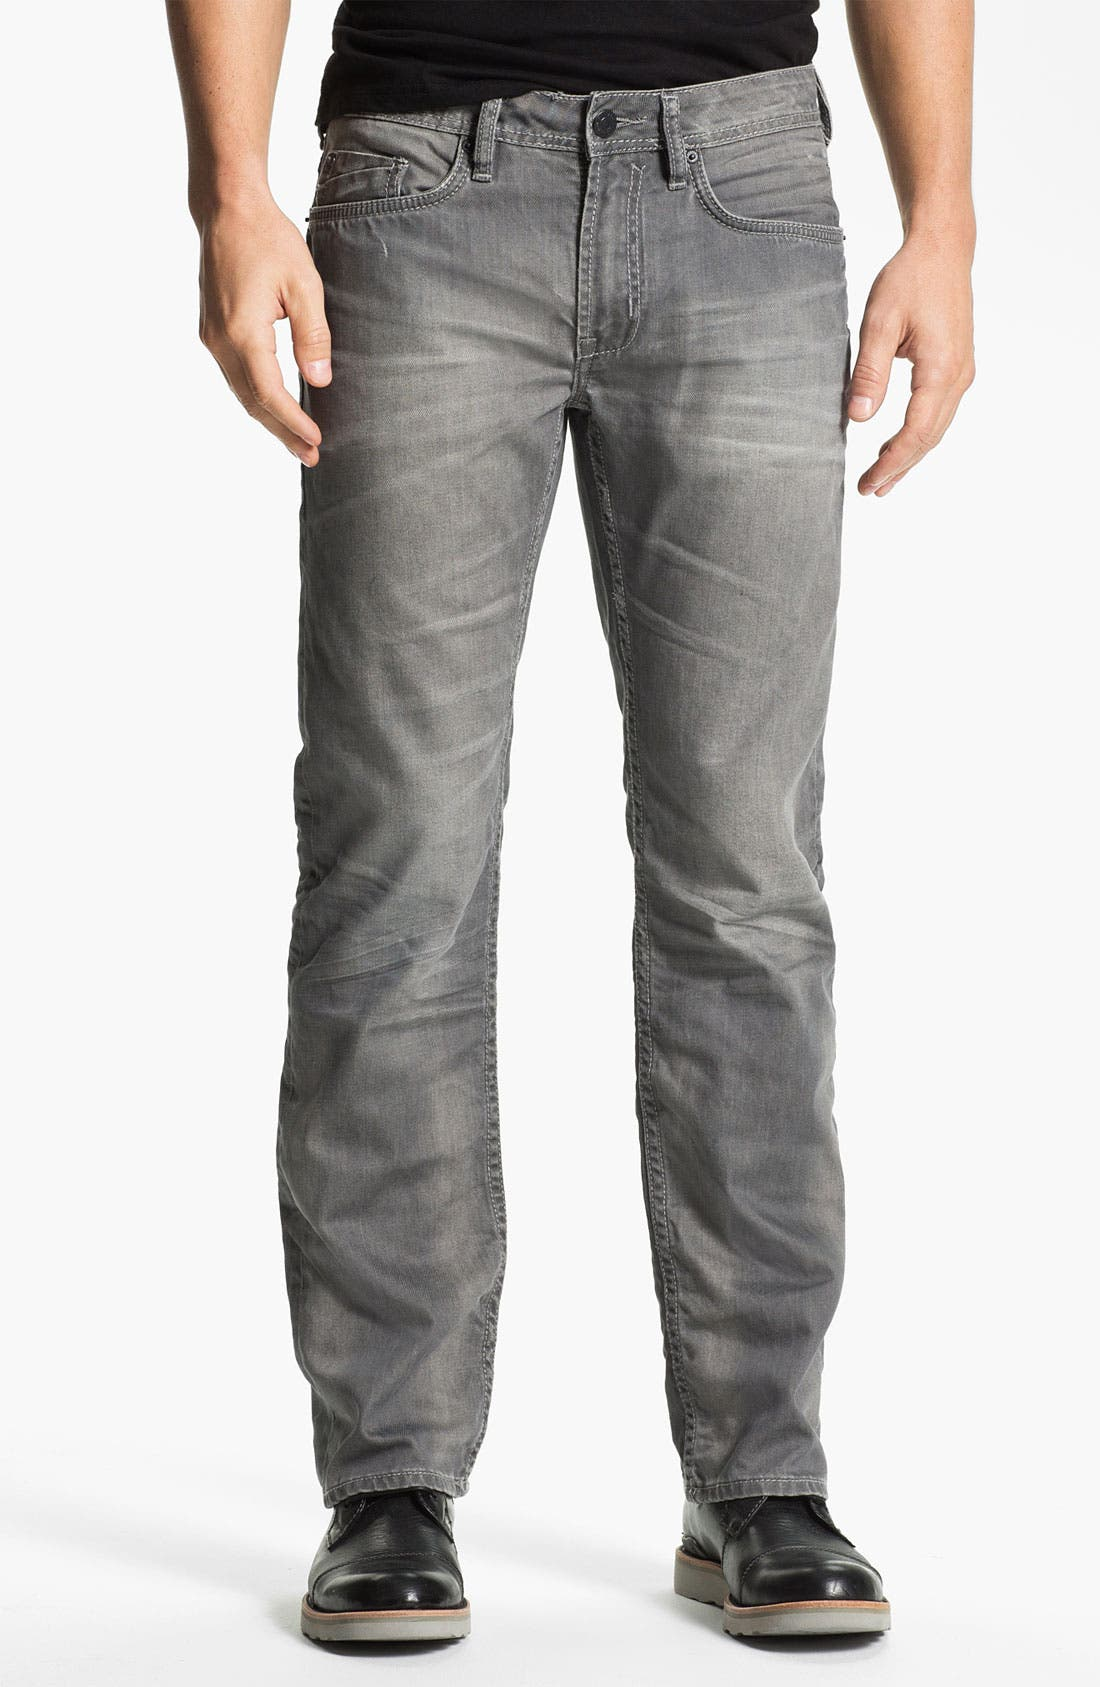 Alternate Image 1 Selected - Buffalo Jeans 'Driven' Straight Leg Jeans (Aged/Torn)